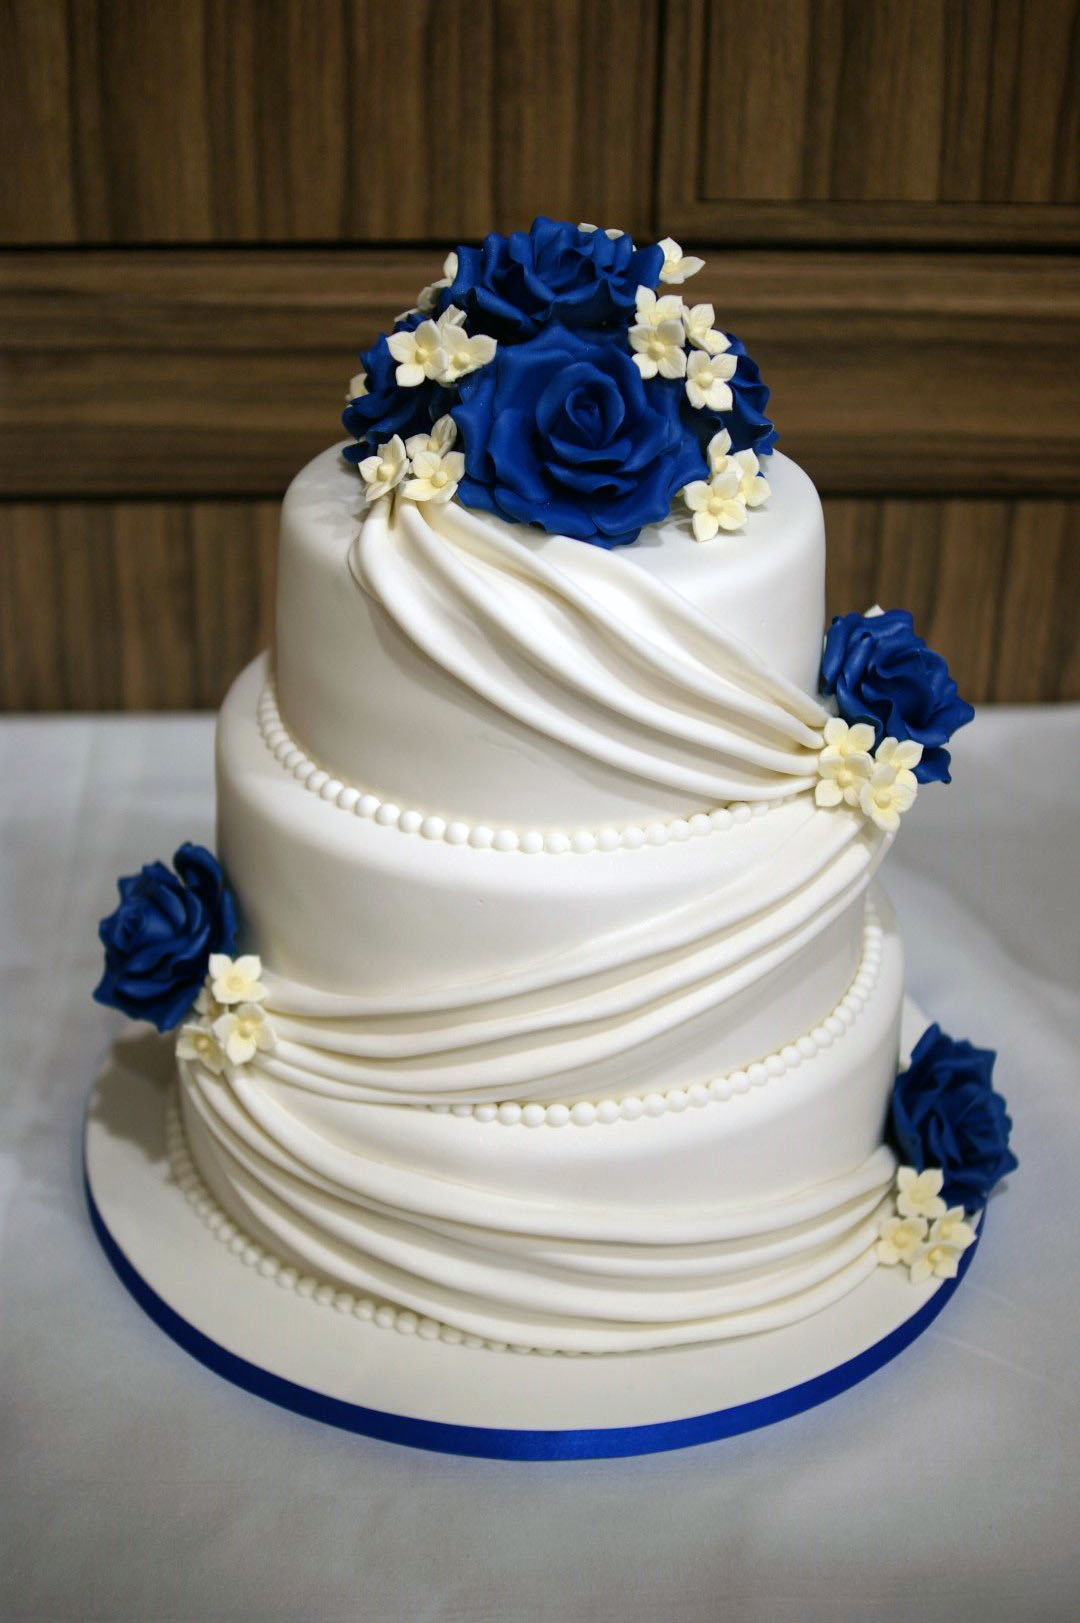 Three Tear Wedding Cakes.The Best Ideas For Three Tier Wedding Cakes The Best Recipes